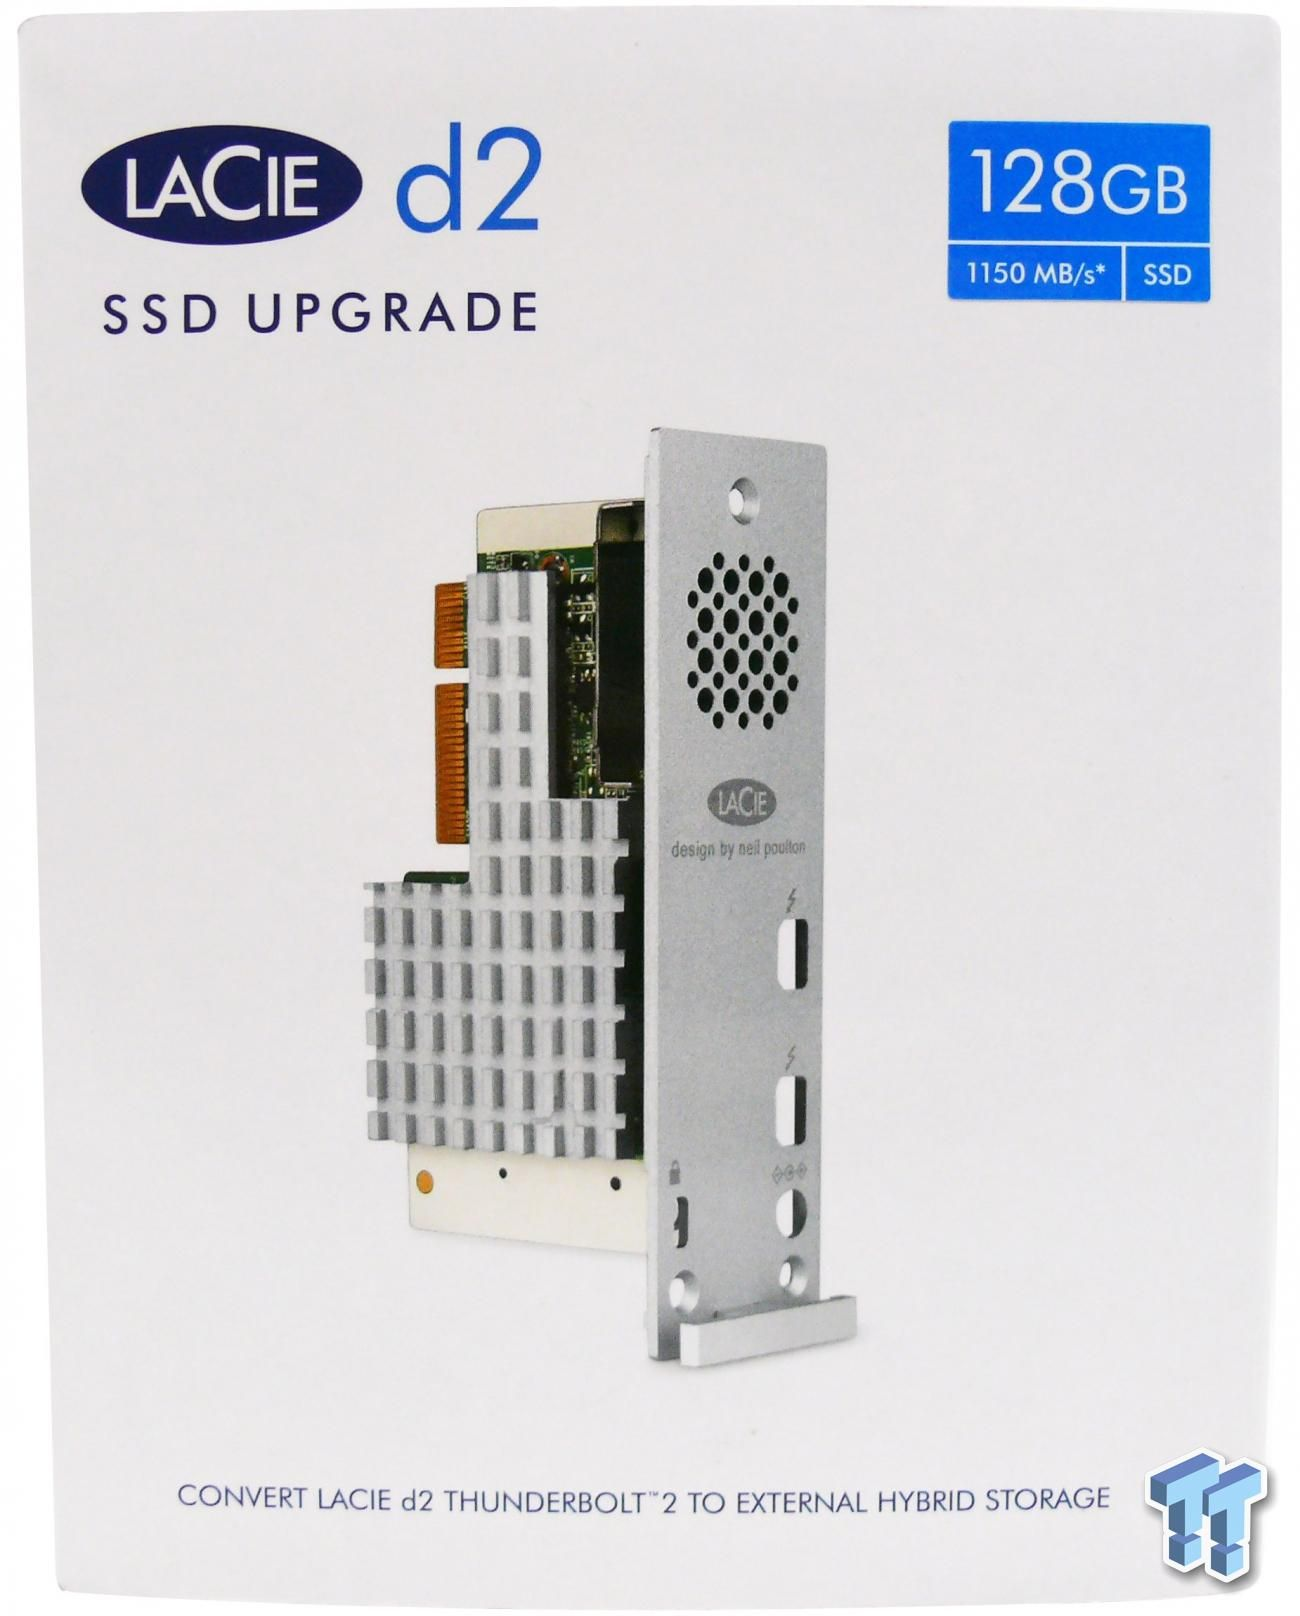 Lacie D2 Thunderbolt 2 128gb Ssd Storage Upgrade Kit Review Storage Ssd Locker Storage